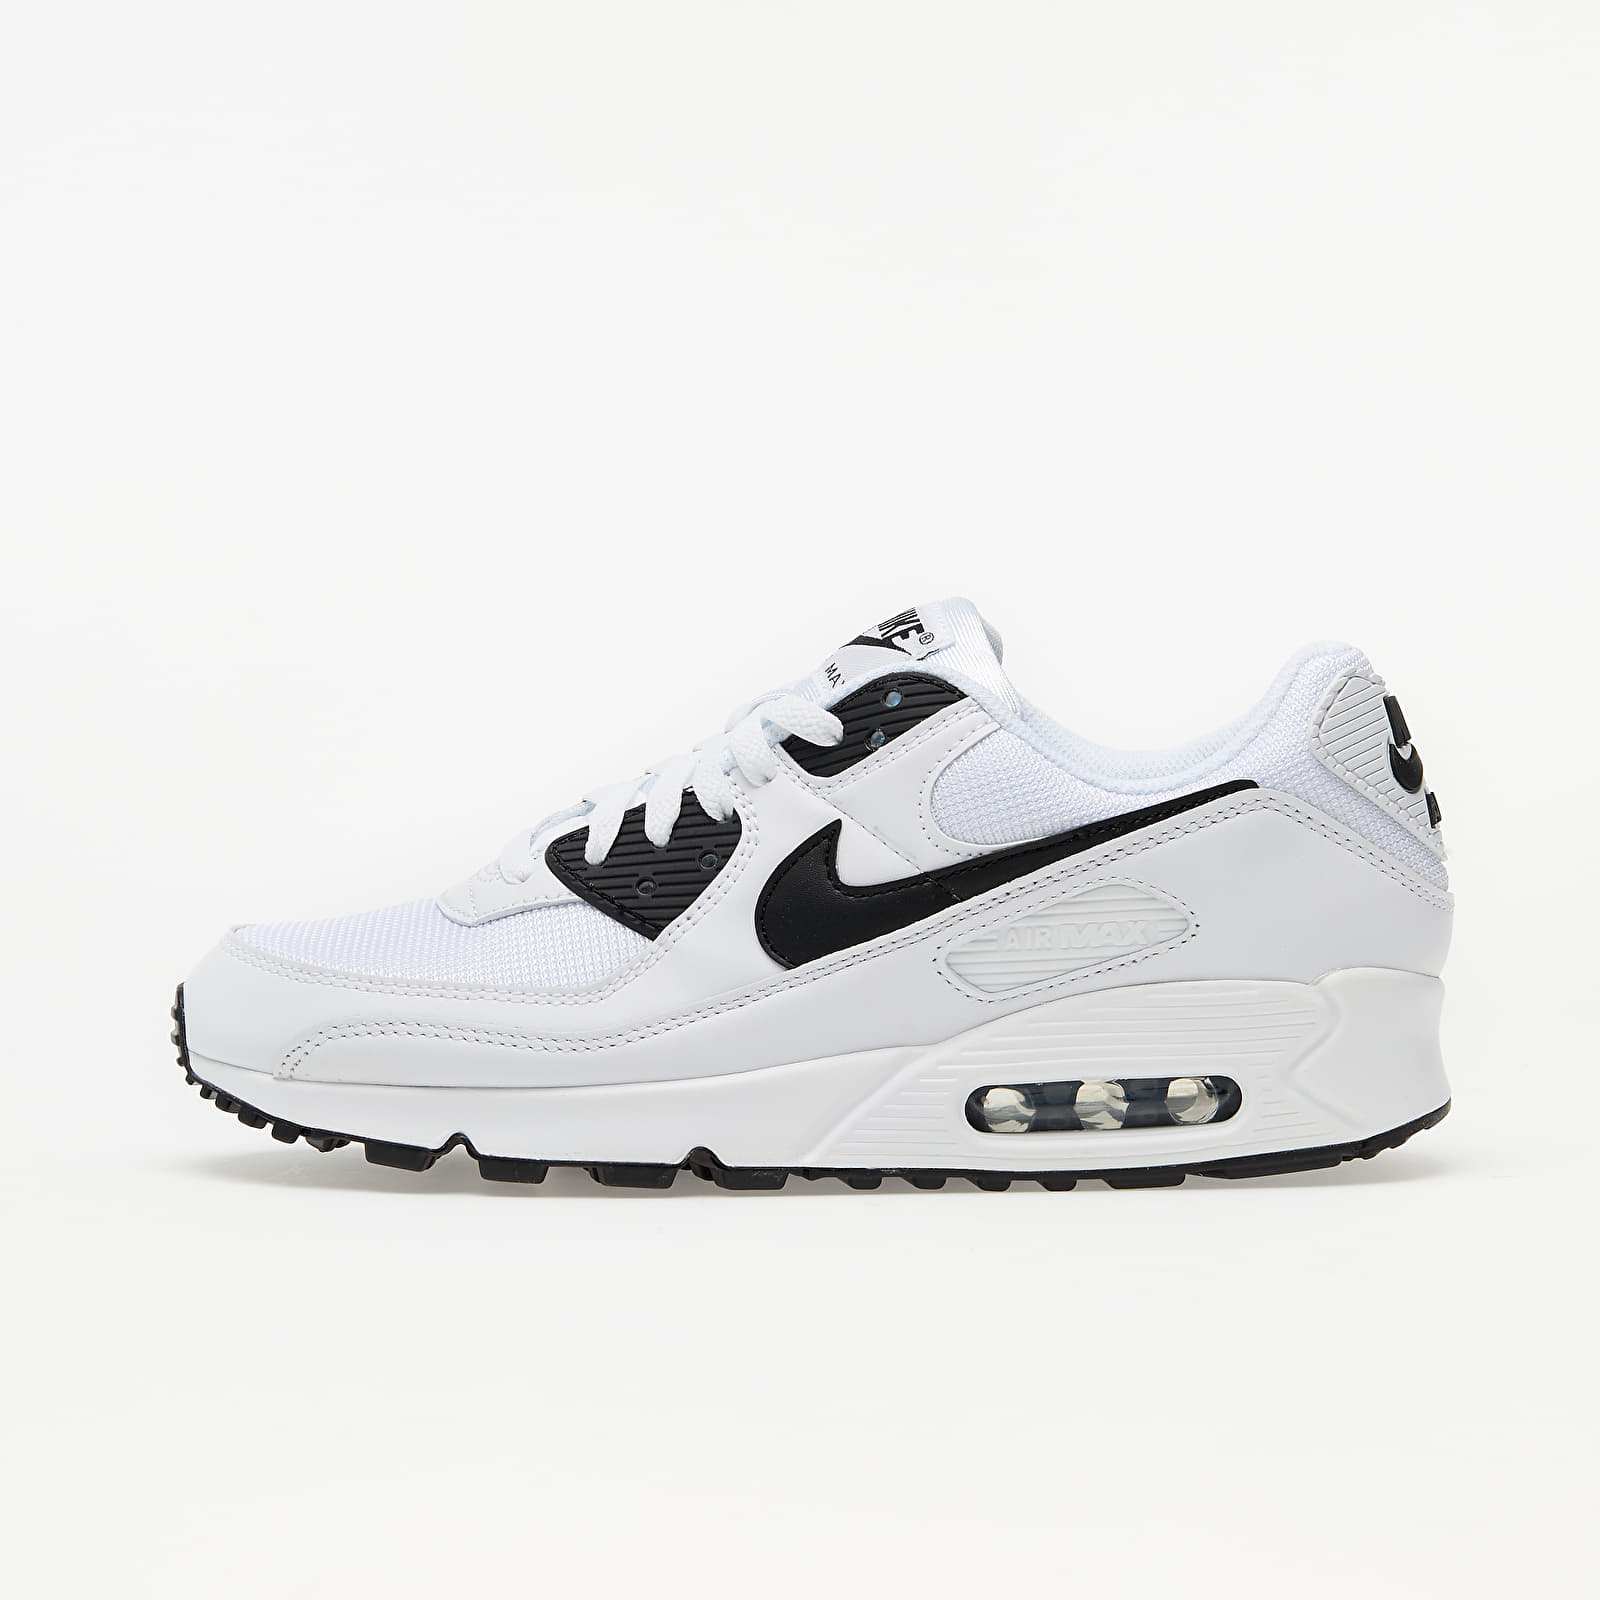 Nike Air Max 90 White/ Black-White EUR 42.5